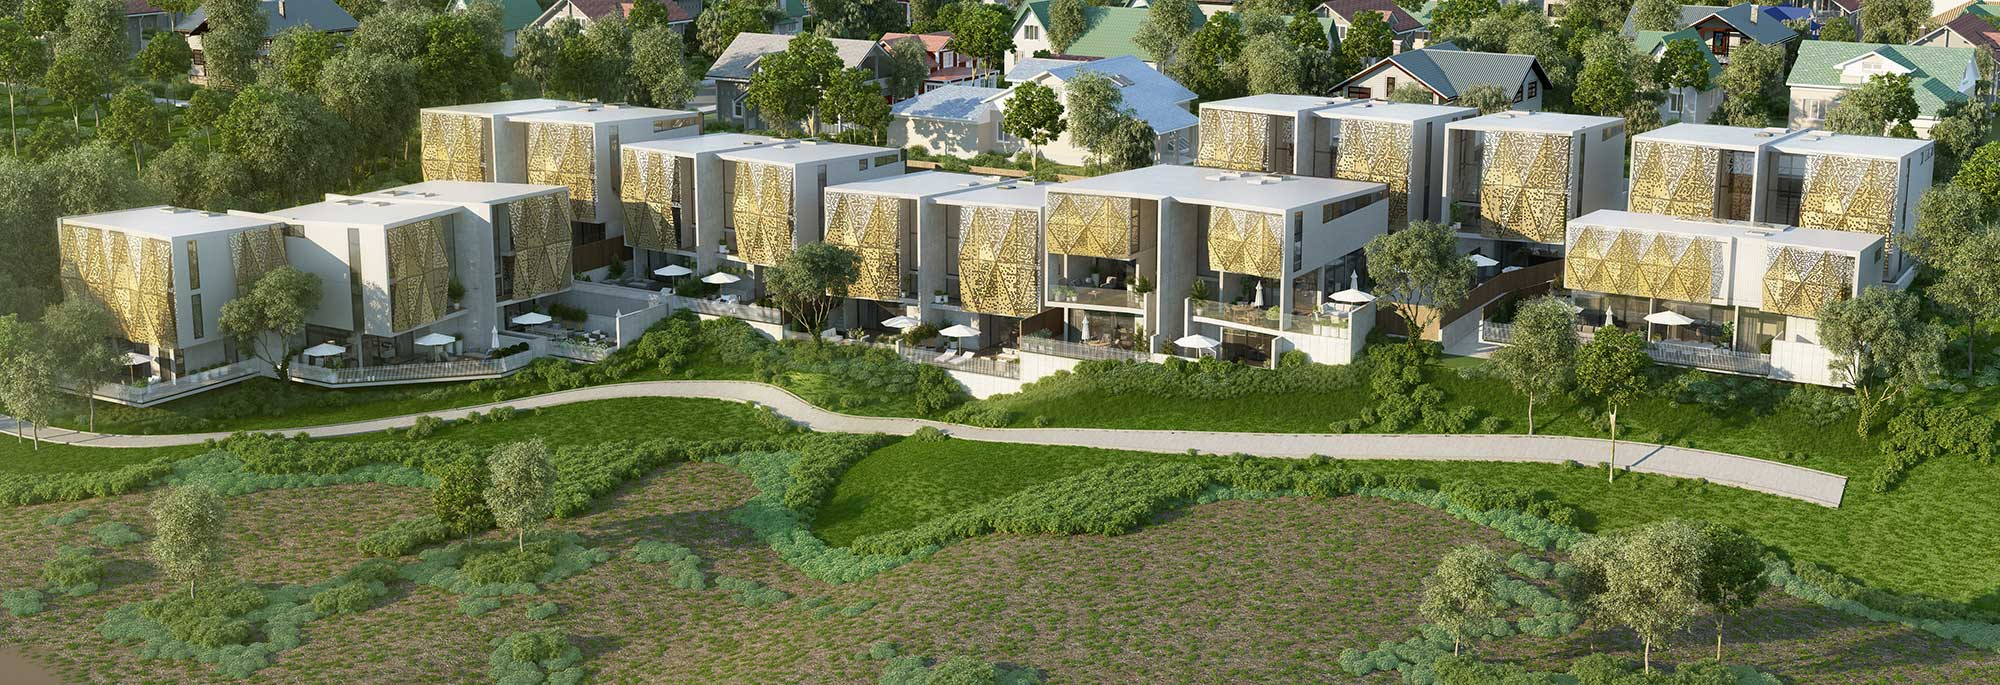 ALFORD BAY RESIDENTIAL DEVELOPMENT